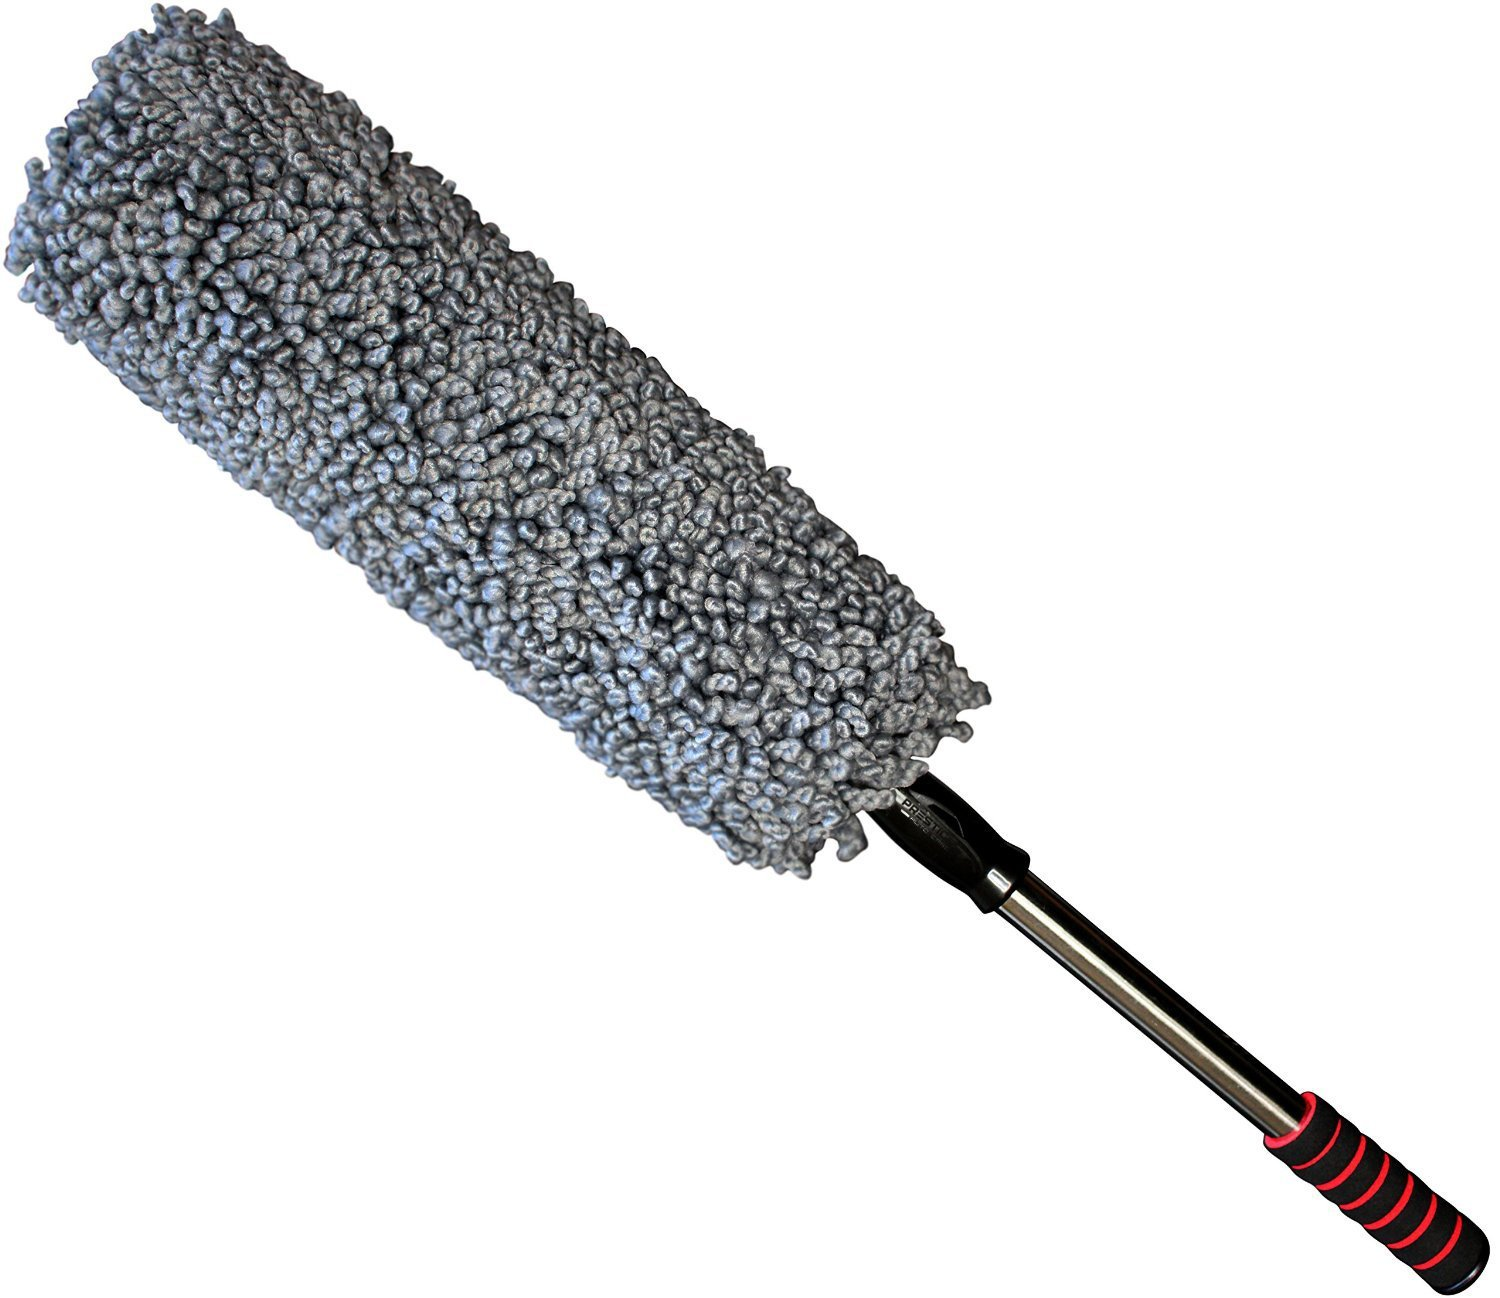 Ultra Premium Car Duster - Better Than The California Duster - Long Extendable Handle - No Wax Streaks Left Behind by Prestige Auto Care (Image #1)